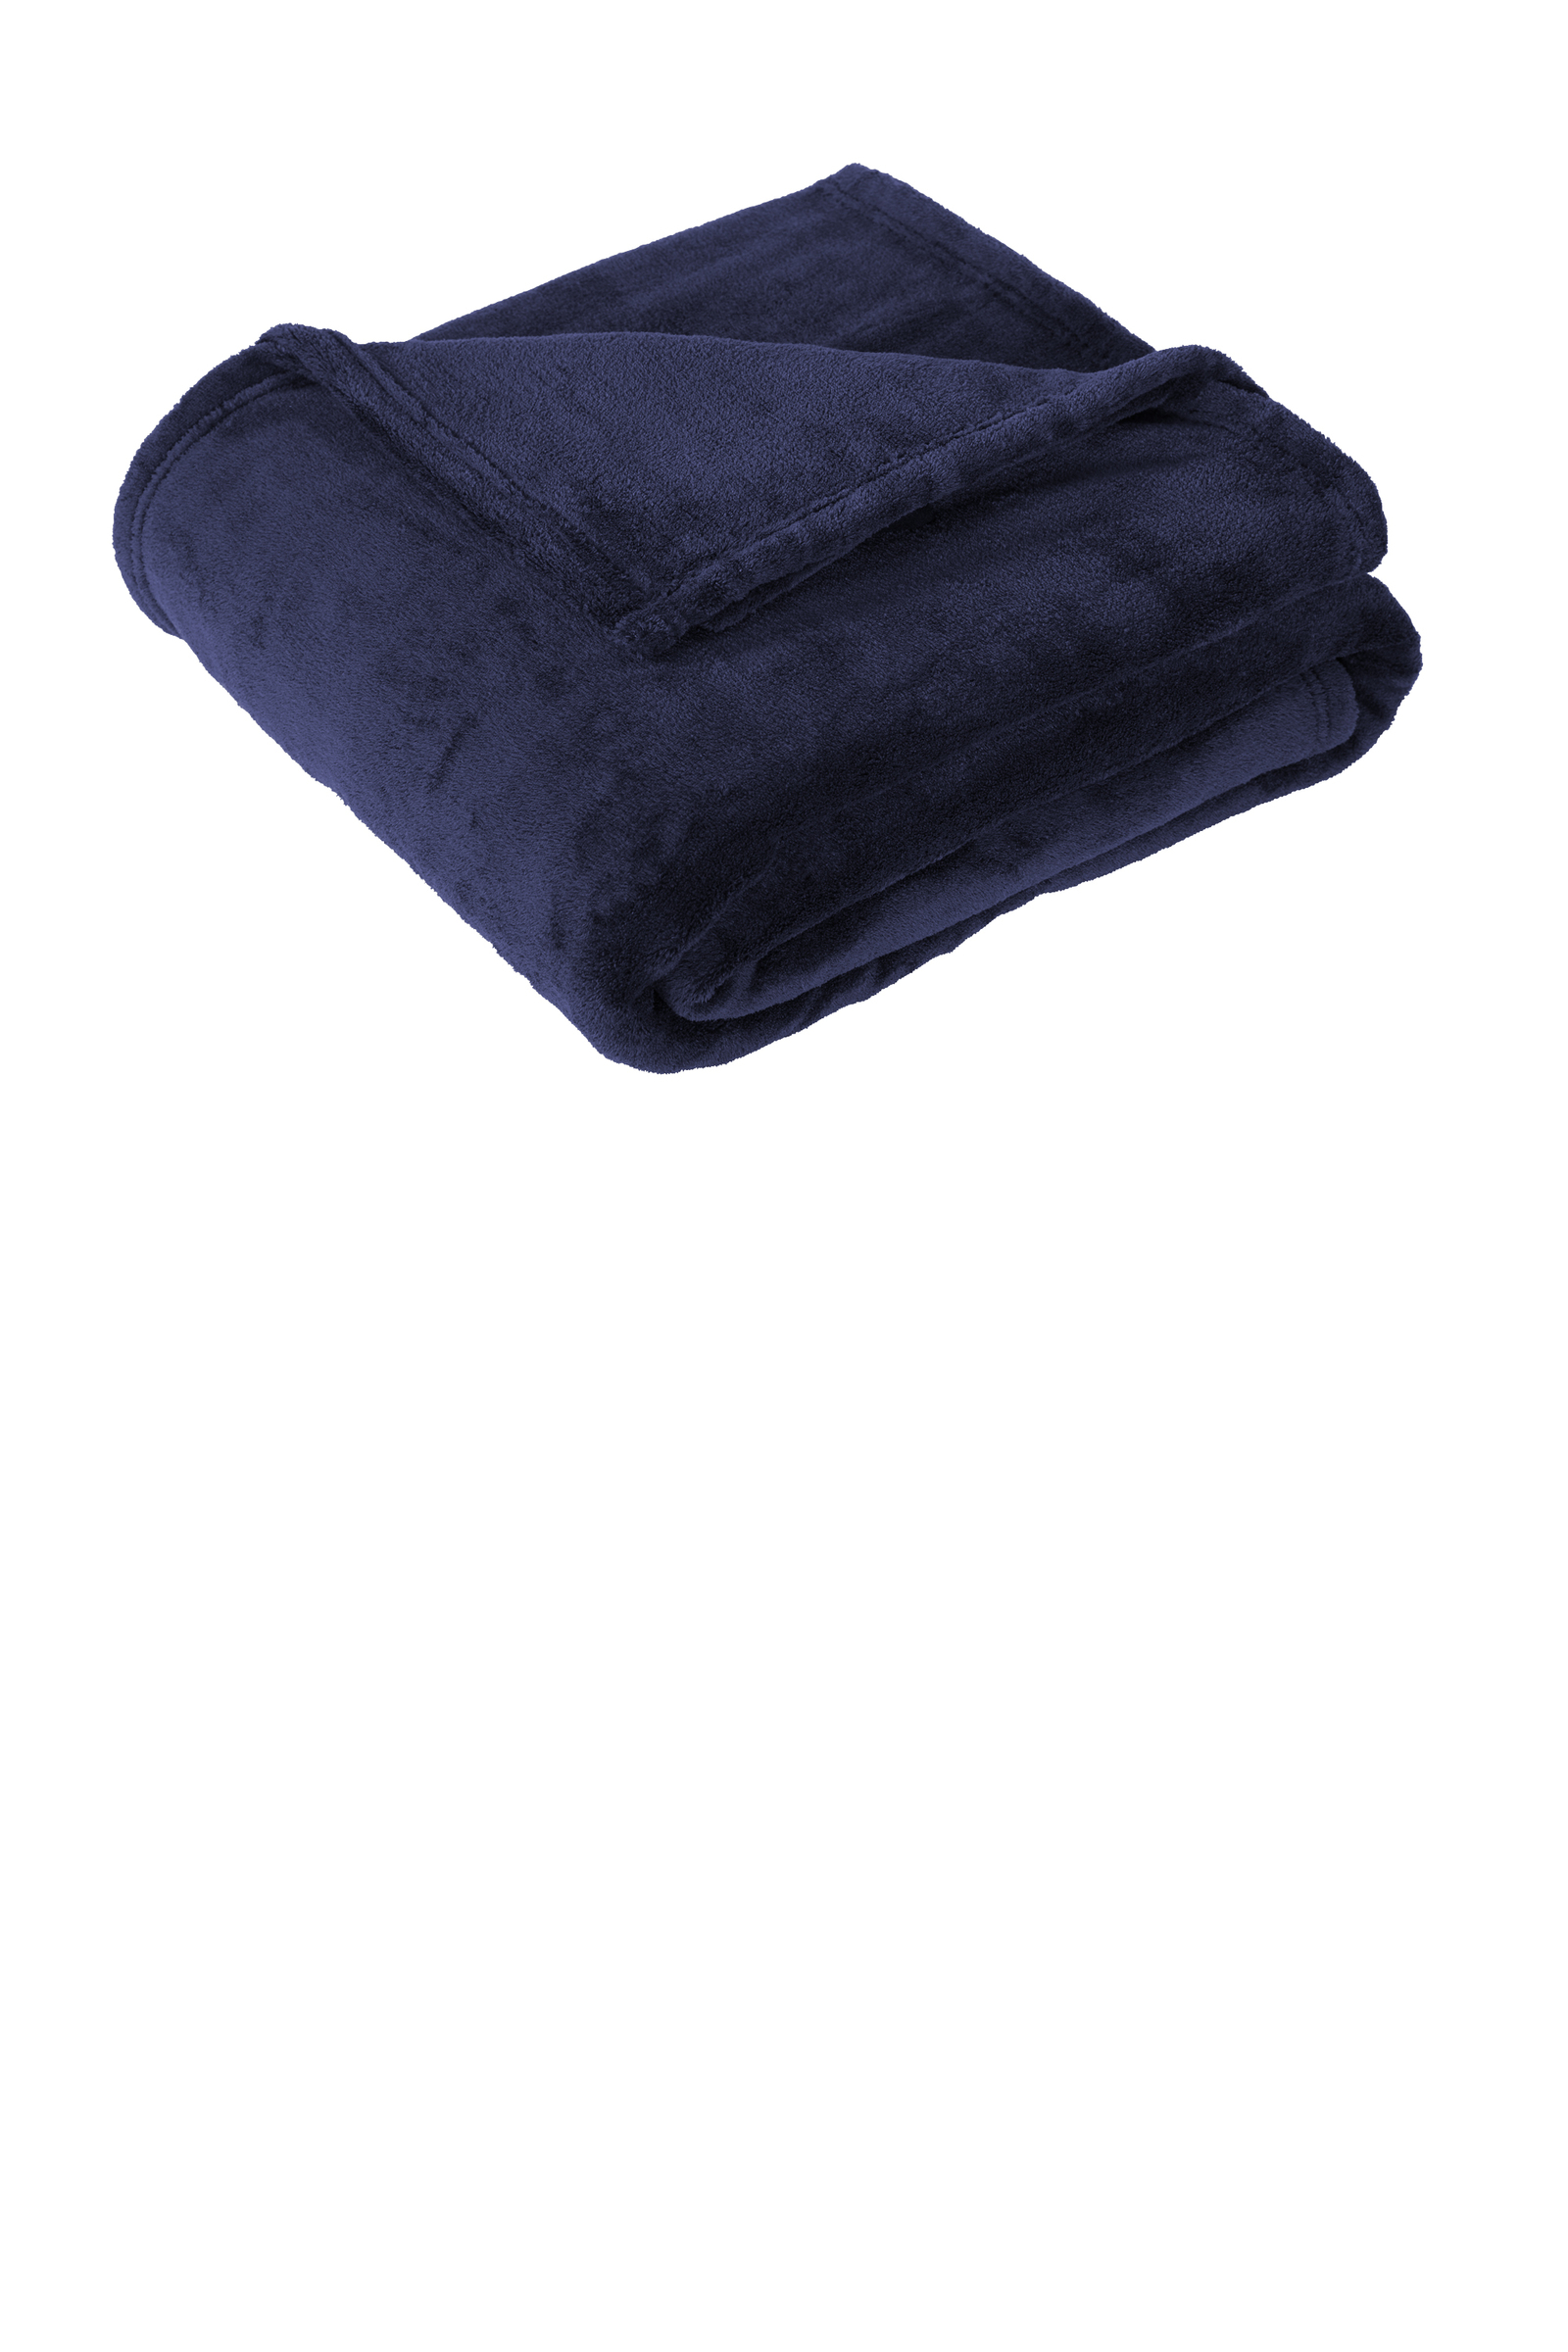 Port Authority Embroidered Oversized Ultra Plush Blanket